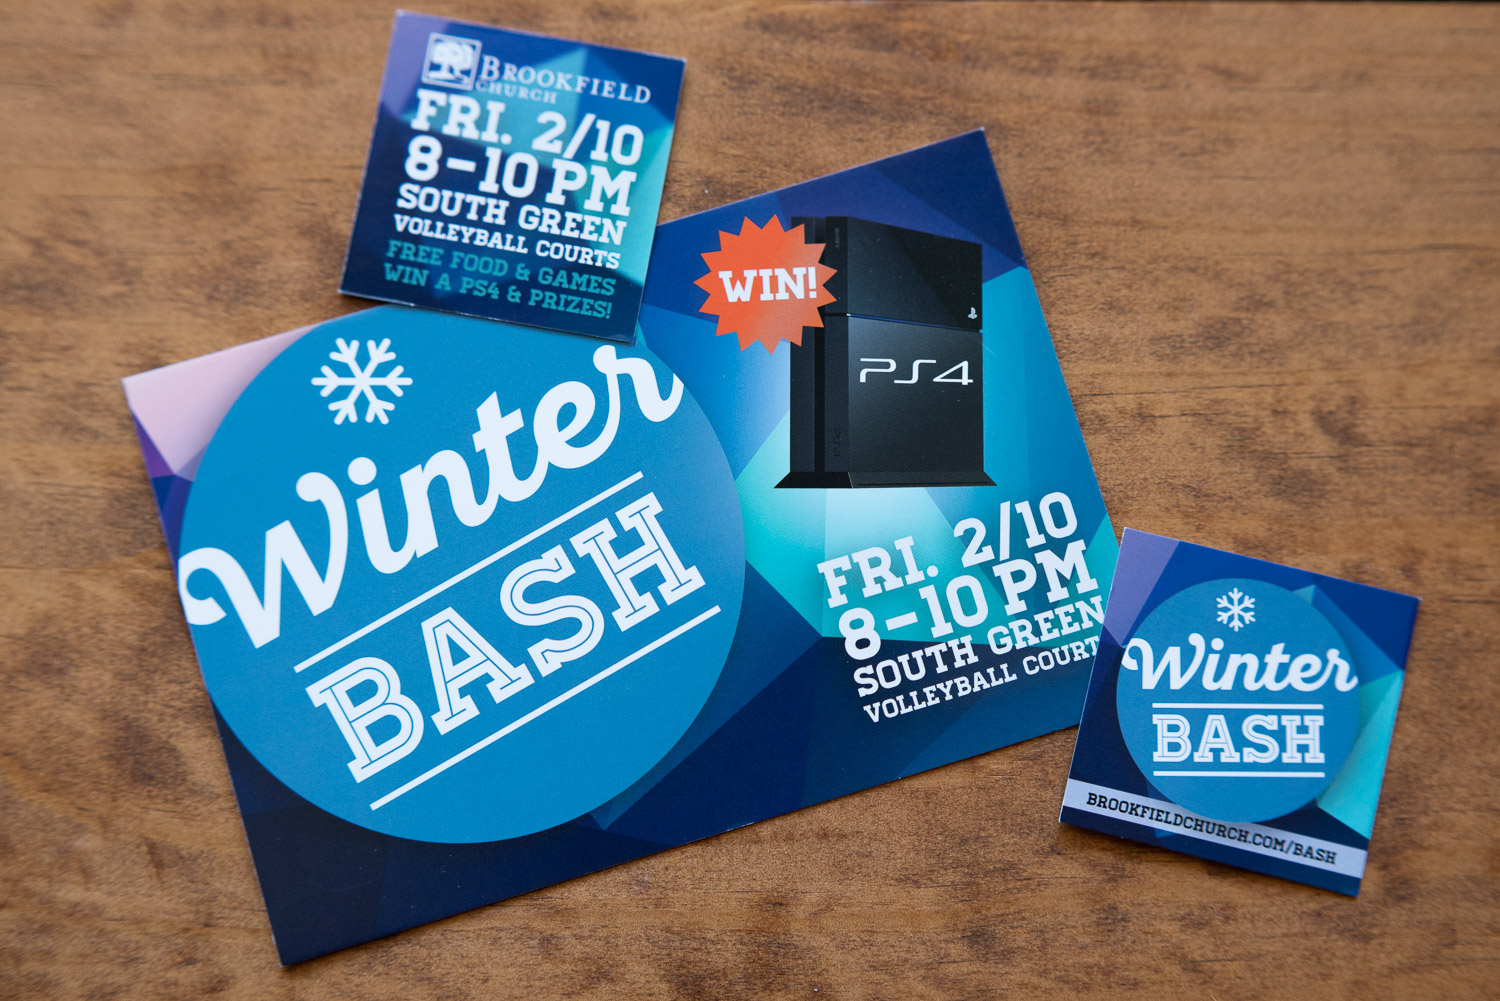 Postcard and invitation cards for a winter party for college students.